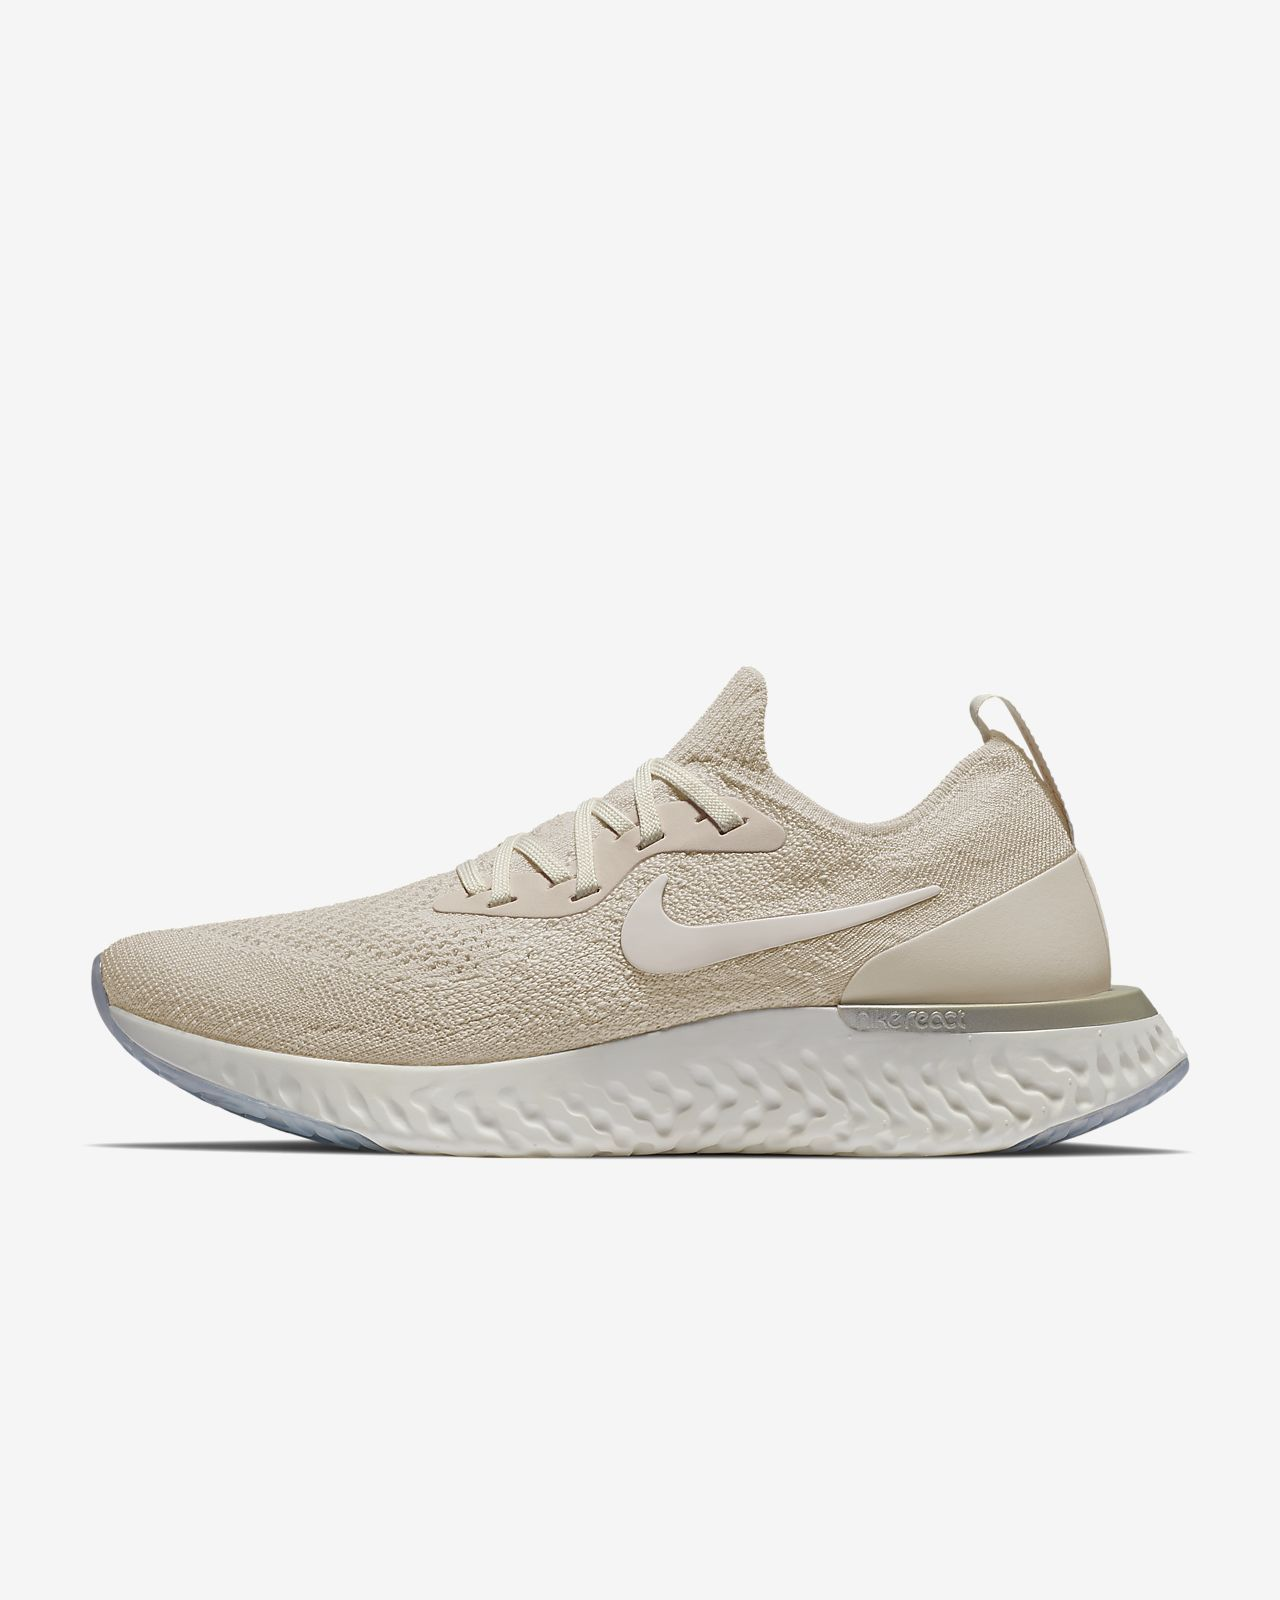 1ca8d7d0f Nike Epic React Flyknit Women s Running Shoe